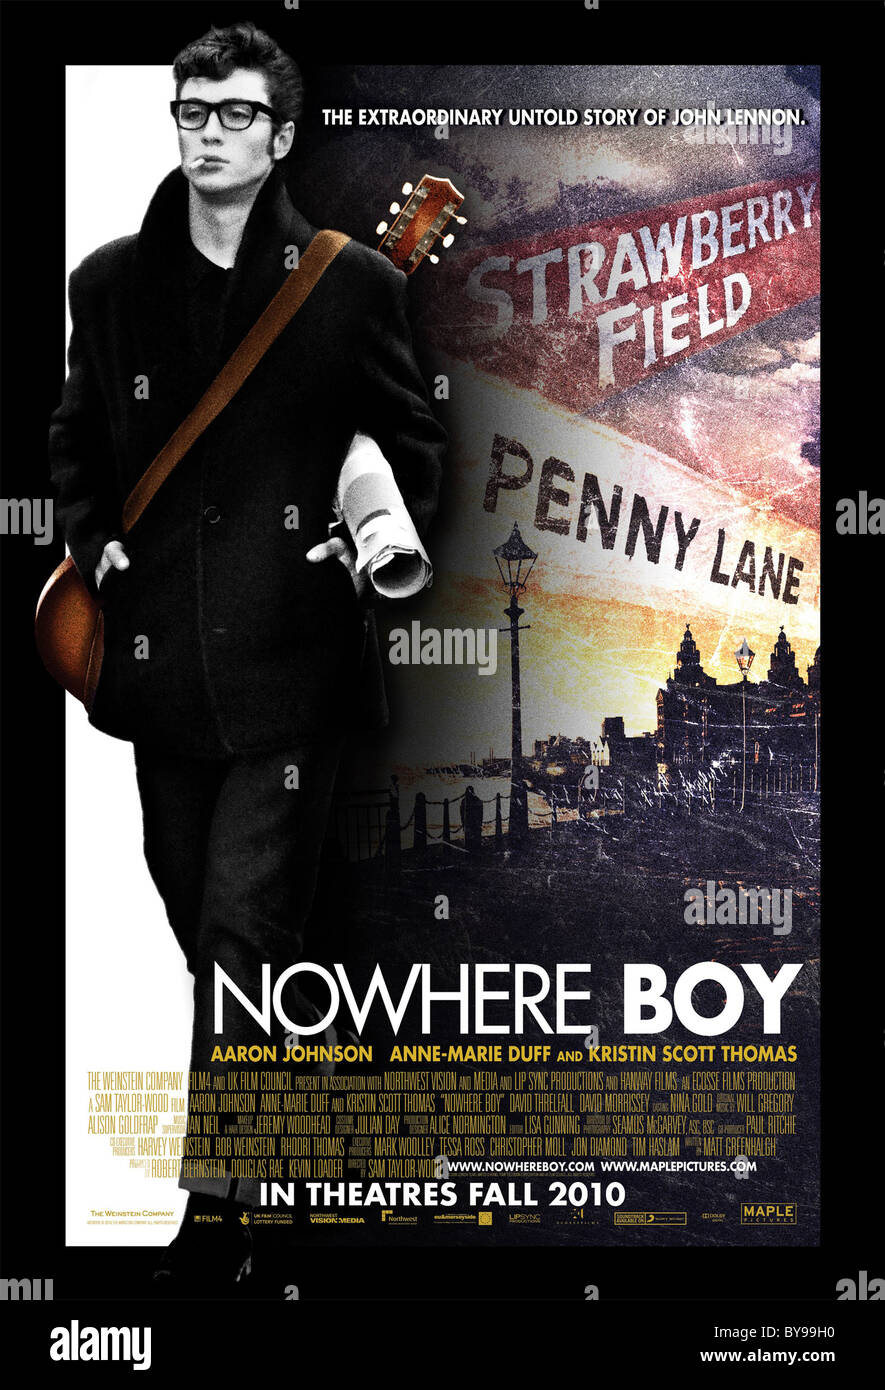 Nowhere Boy Year : 2009 UK / Canada Director : Sam Taylor-Wood Aaron Johnson Movie poster (Can) - Stock Image